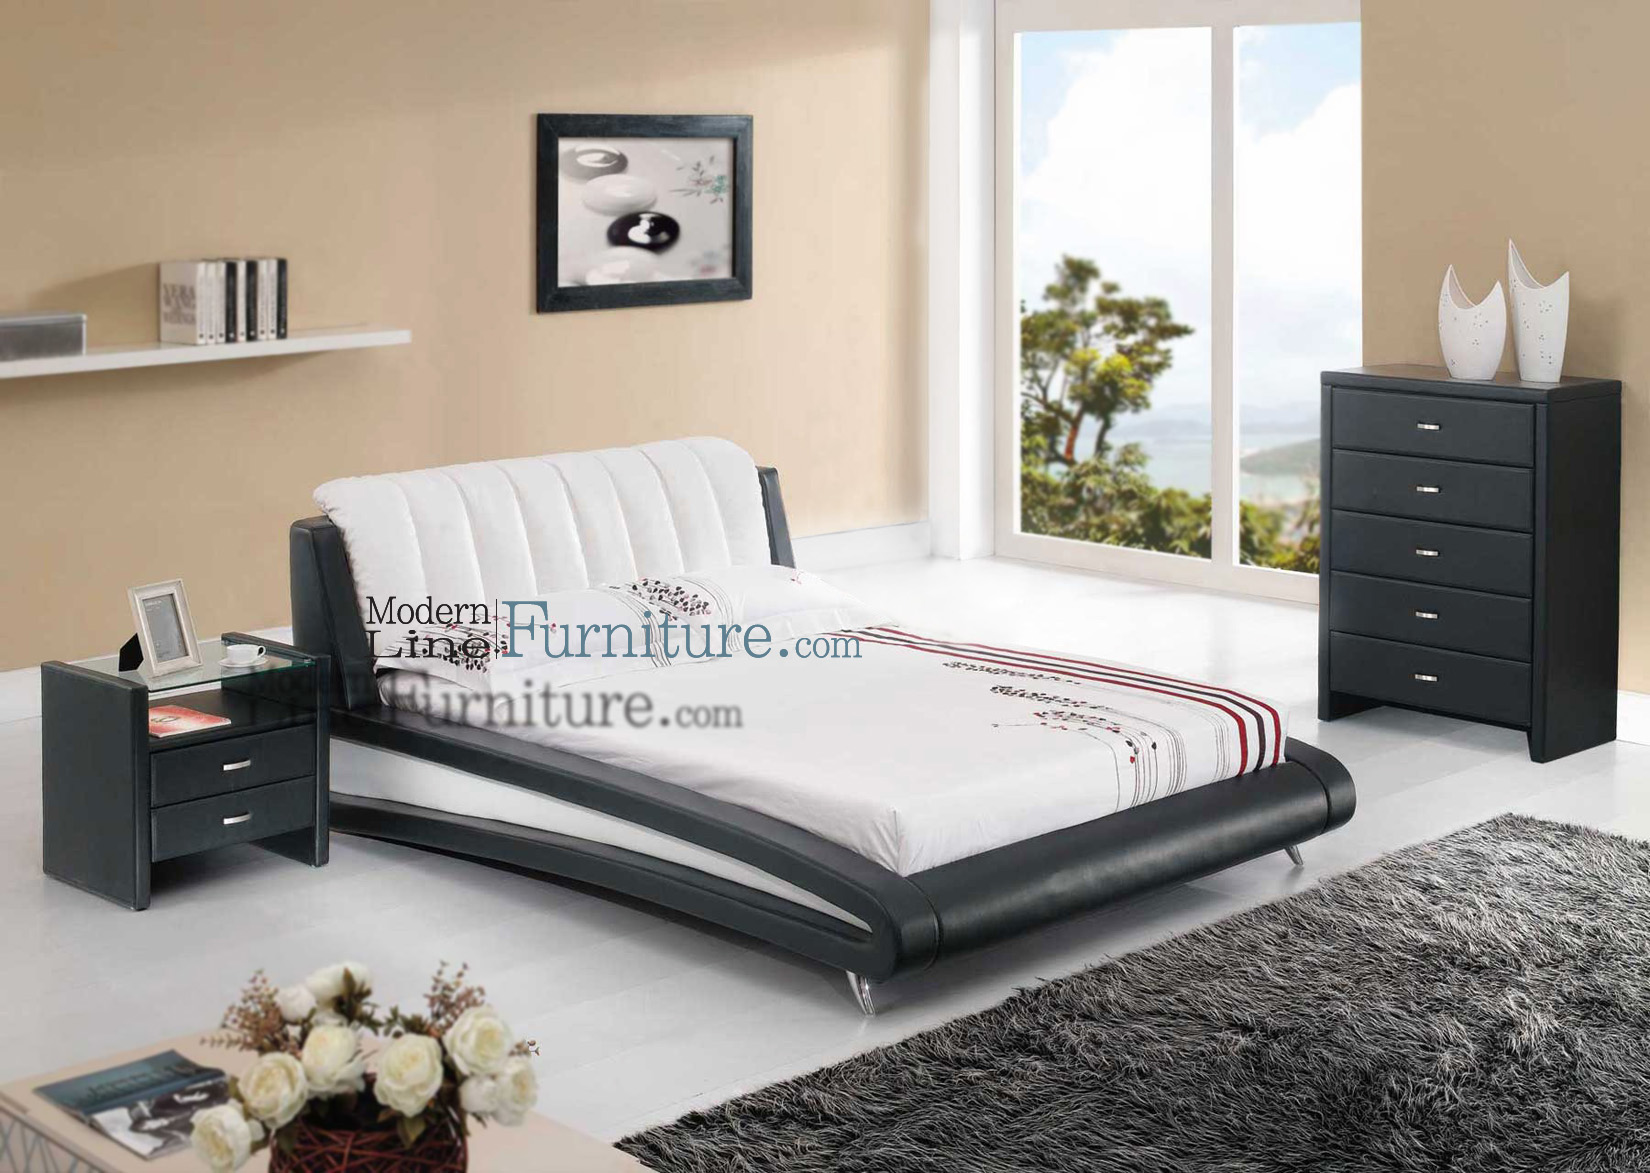 full bedroom sets images best furniture models